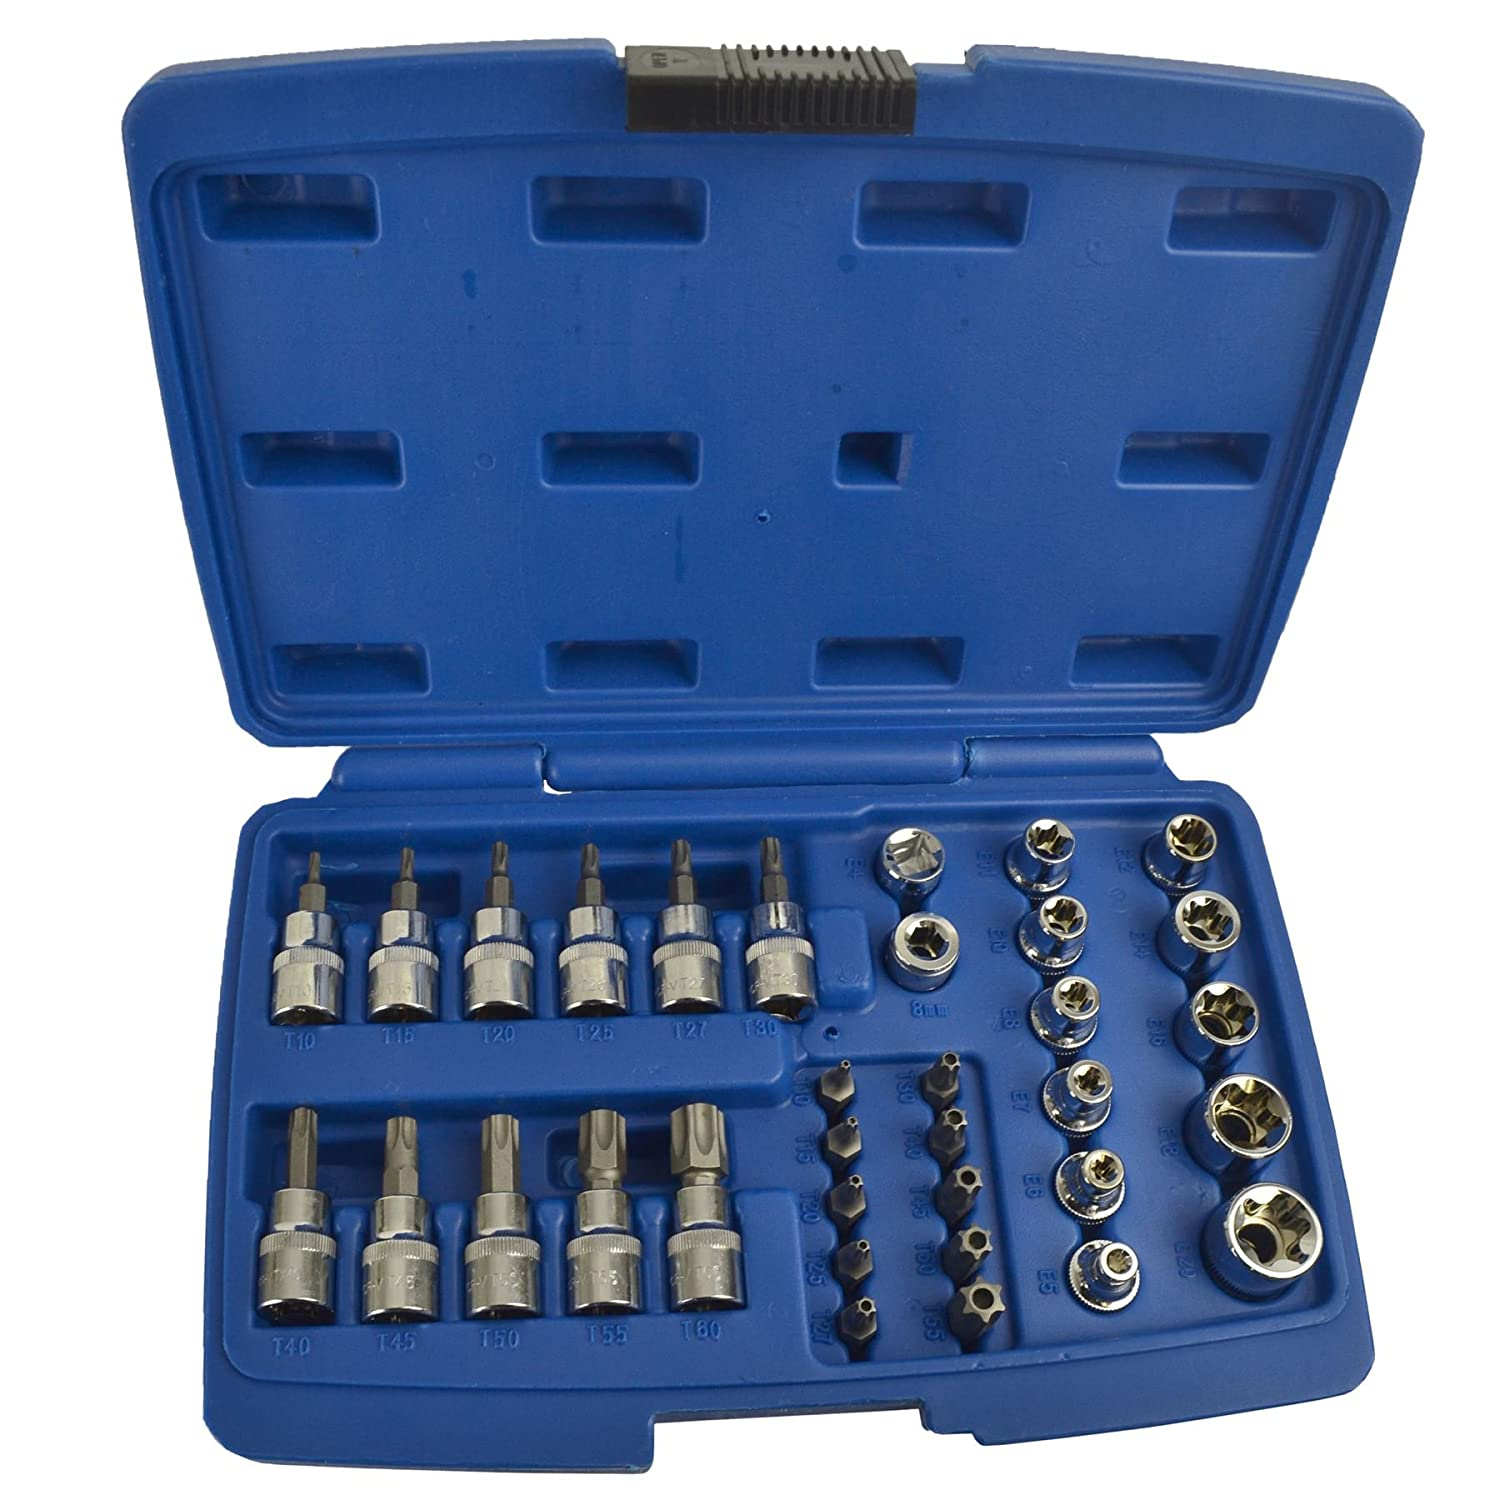 Male / Female / Torx / Star / Tamperproof E Type Sockets 3/8' Drive 34pcs AT447 AB Tools